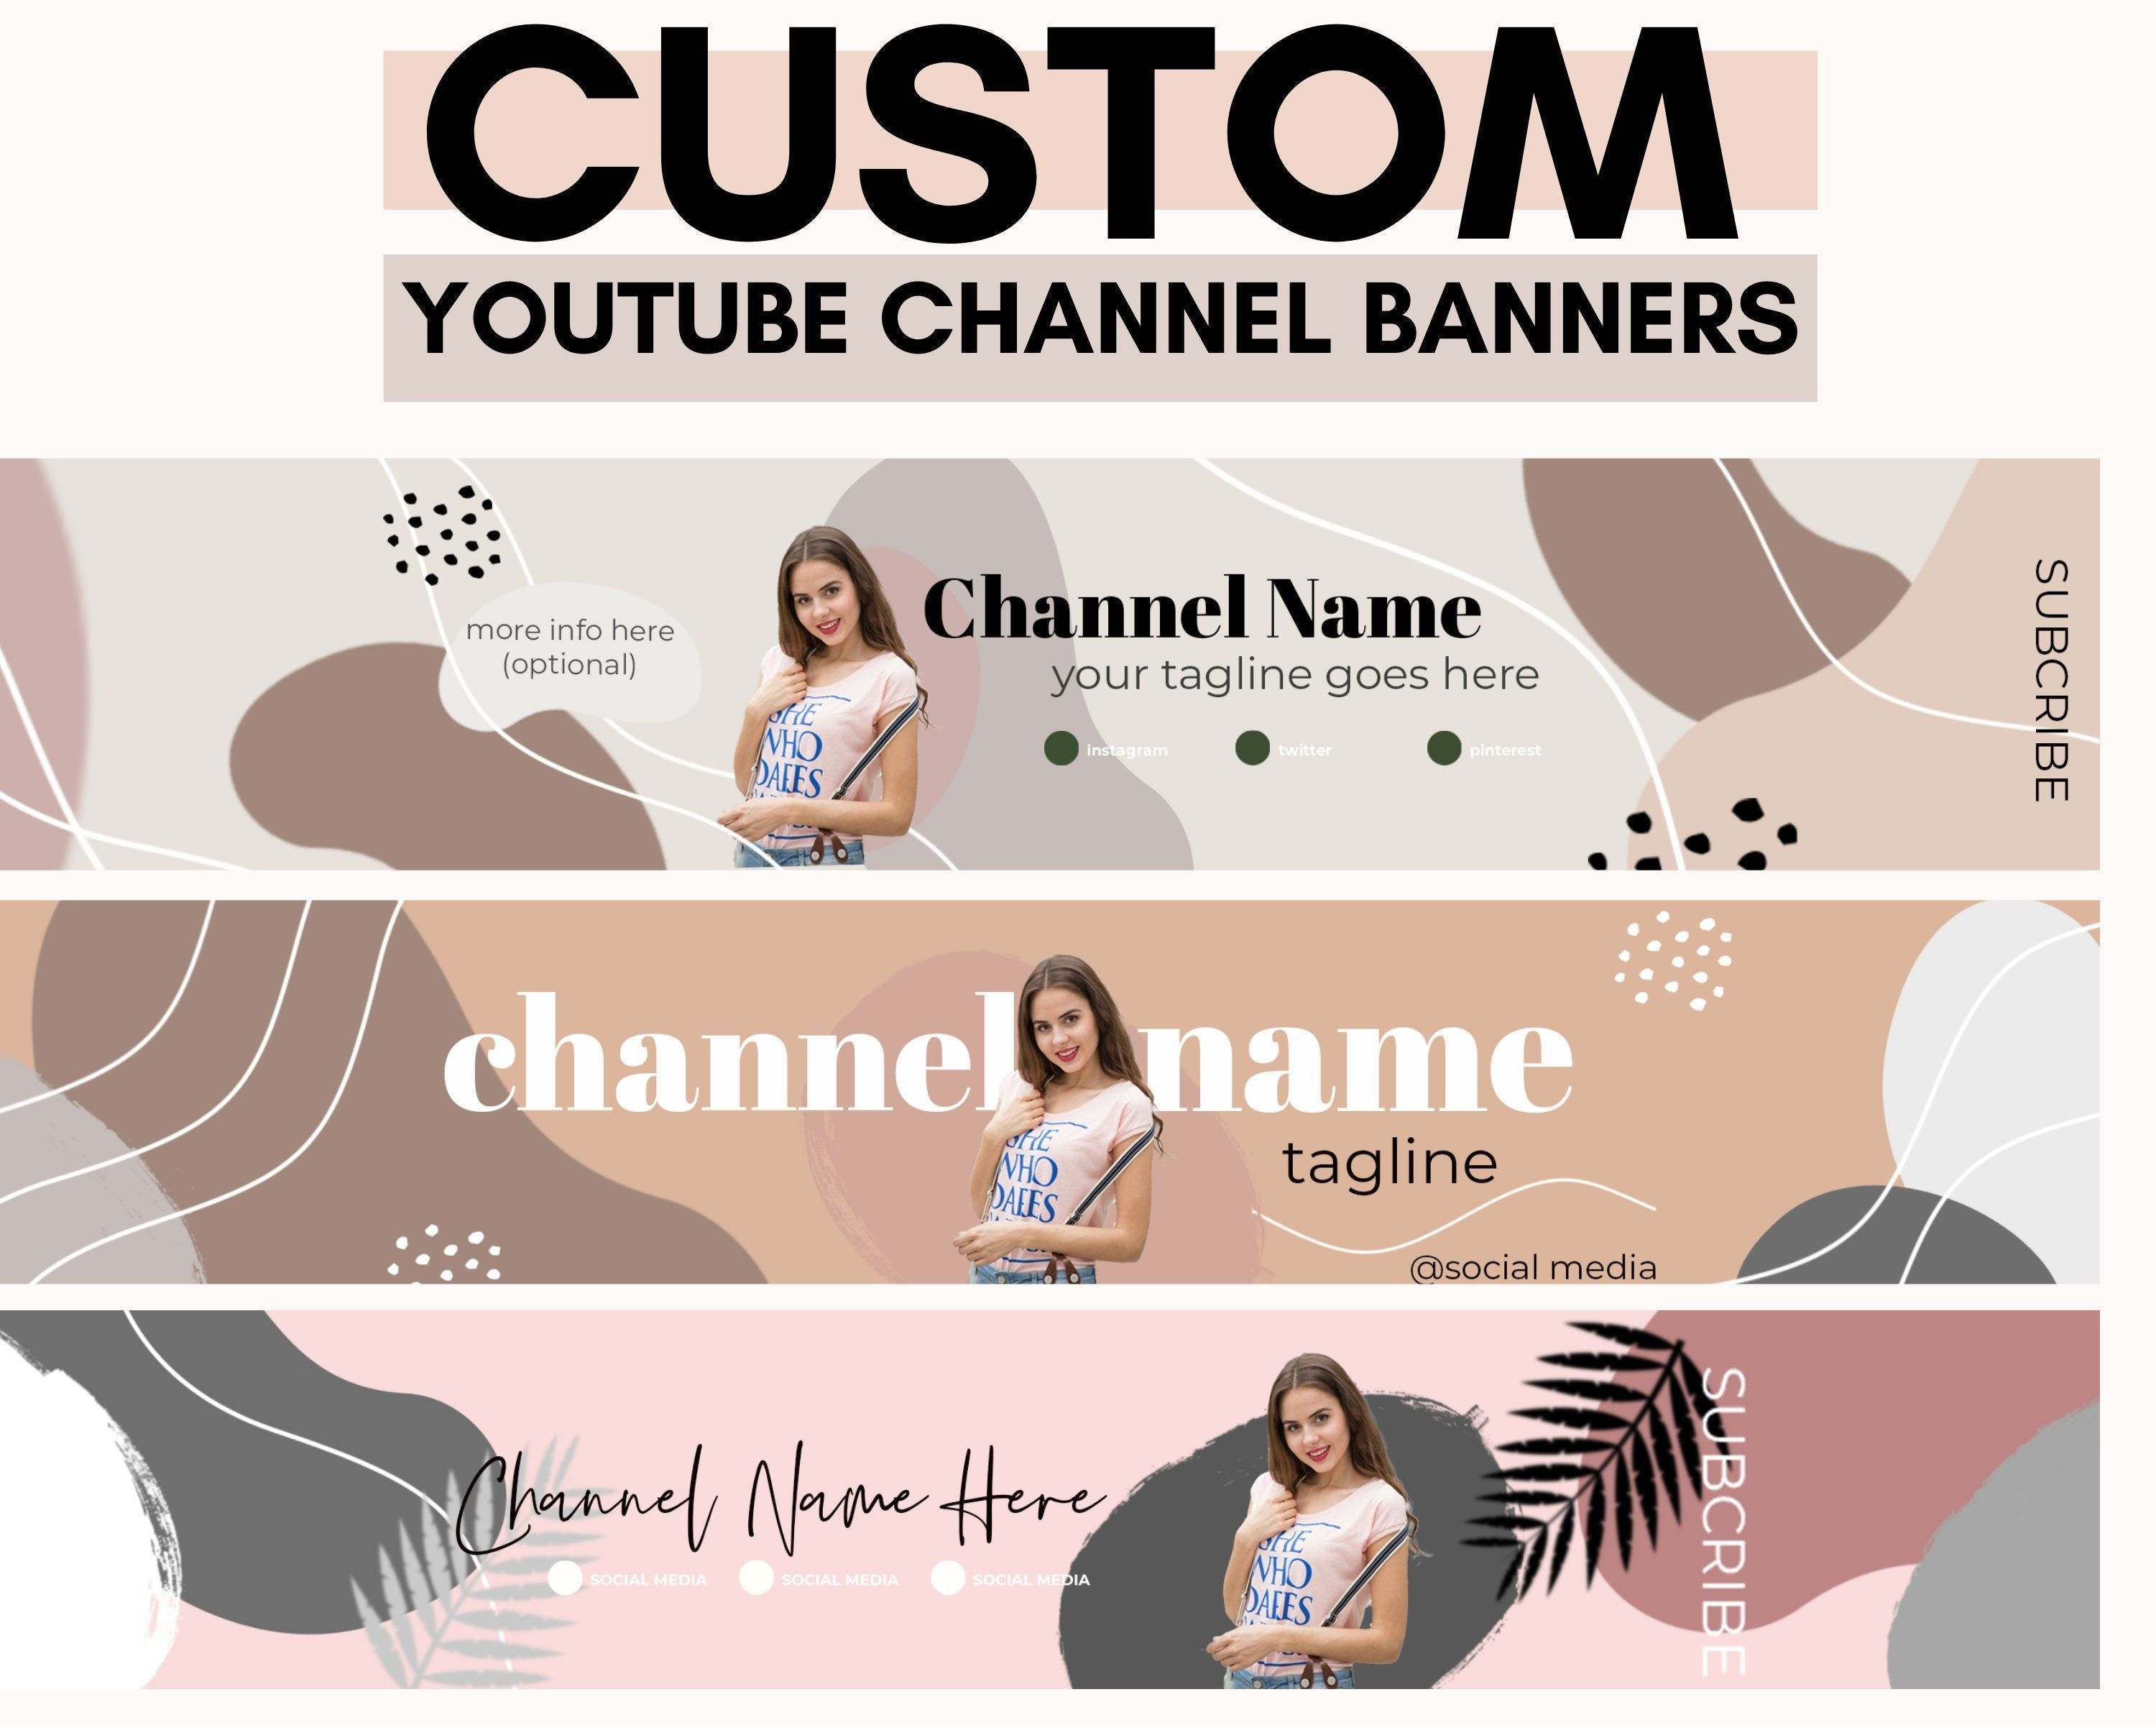 How To Make A Youtube Custom Thumbnail Part 01 Adobe Photoshop Cs6 Complete Tutorial Par Youtube Banner Backgrounds Youtube Channel Ideas Youtube Channel Art